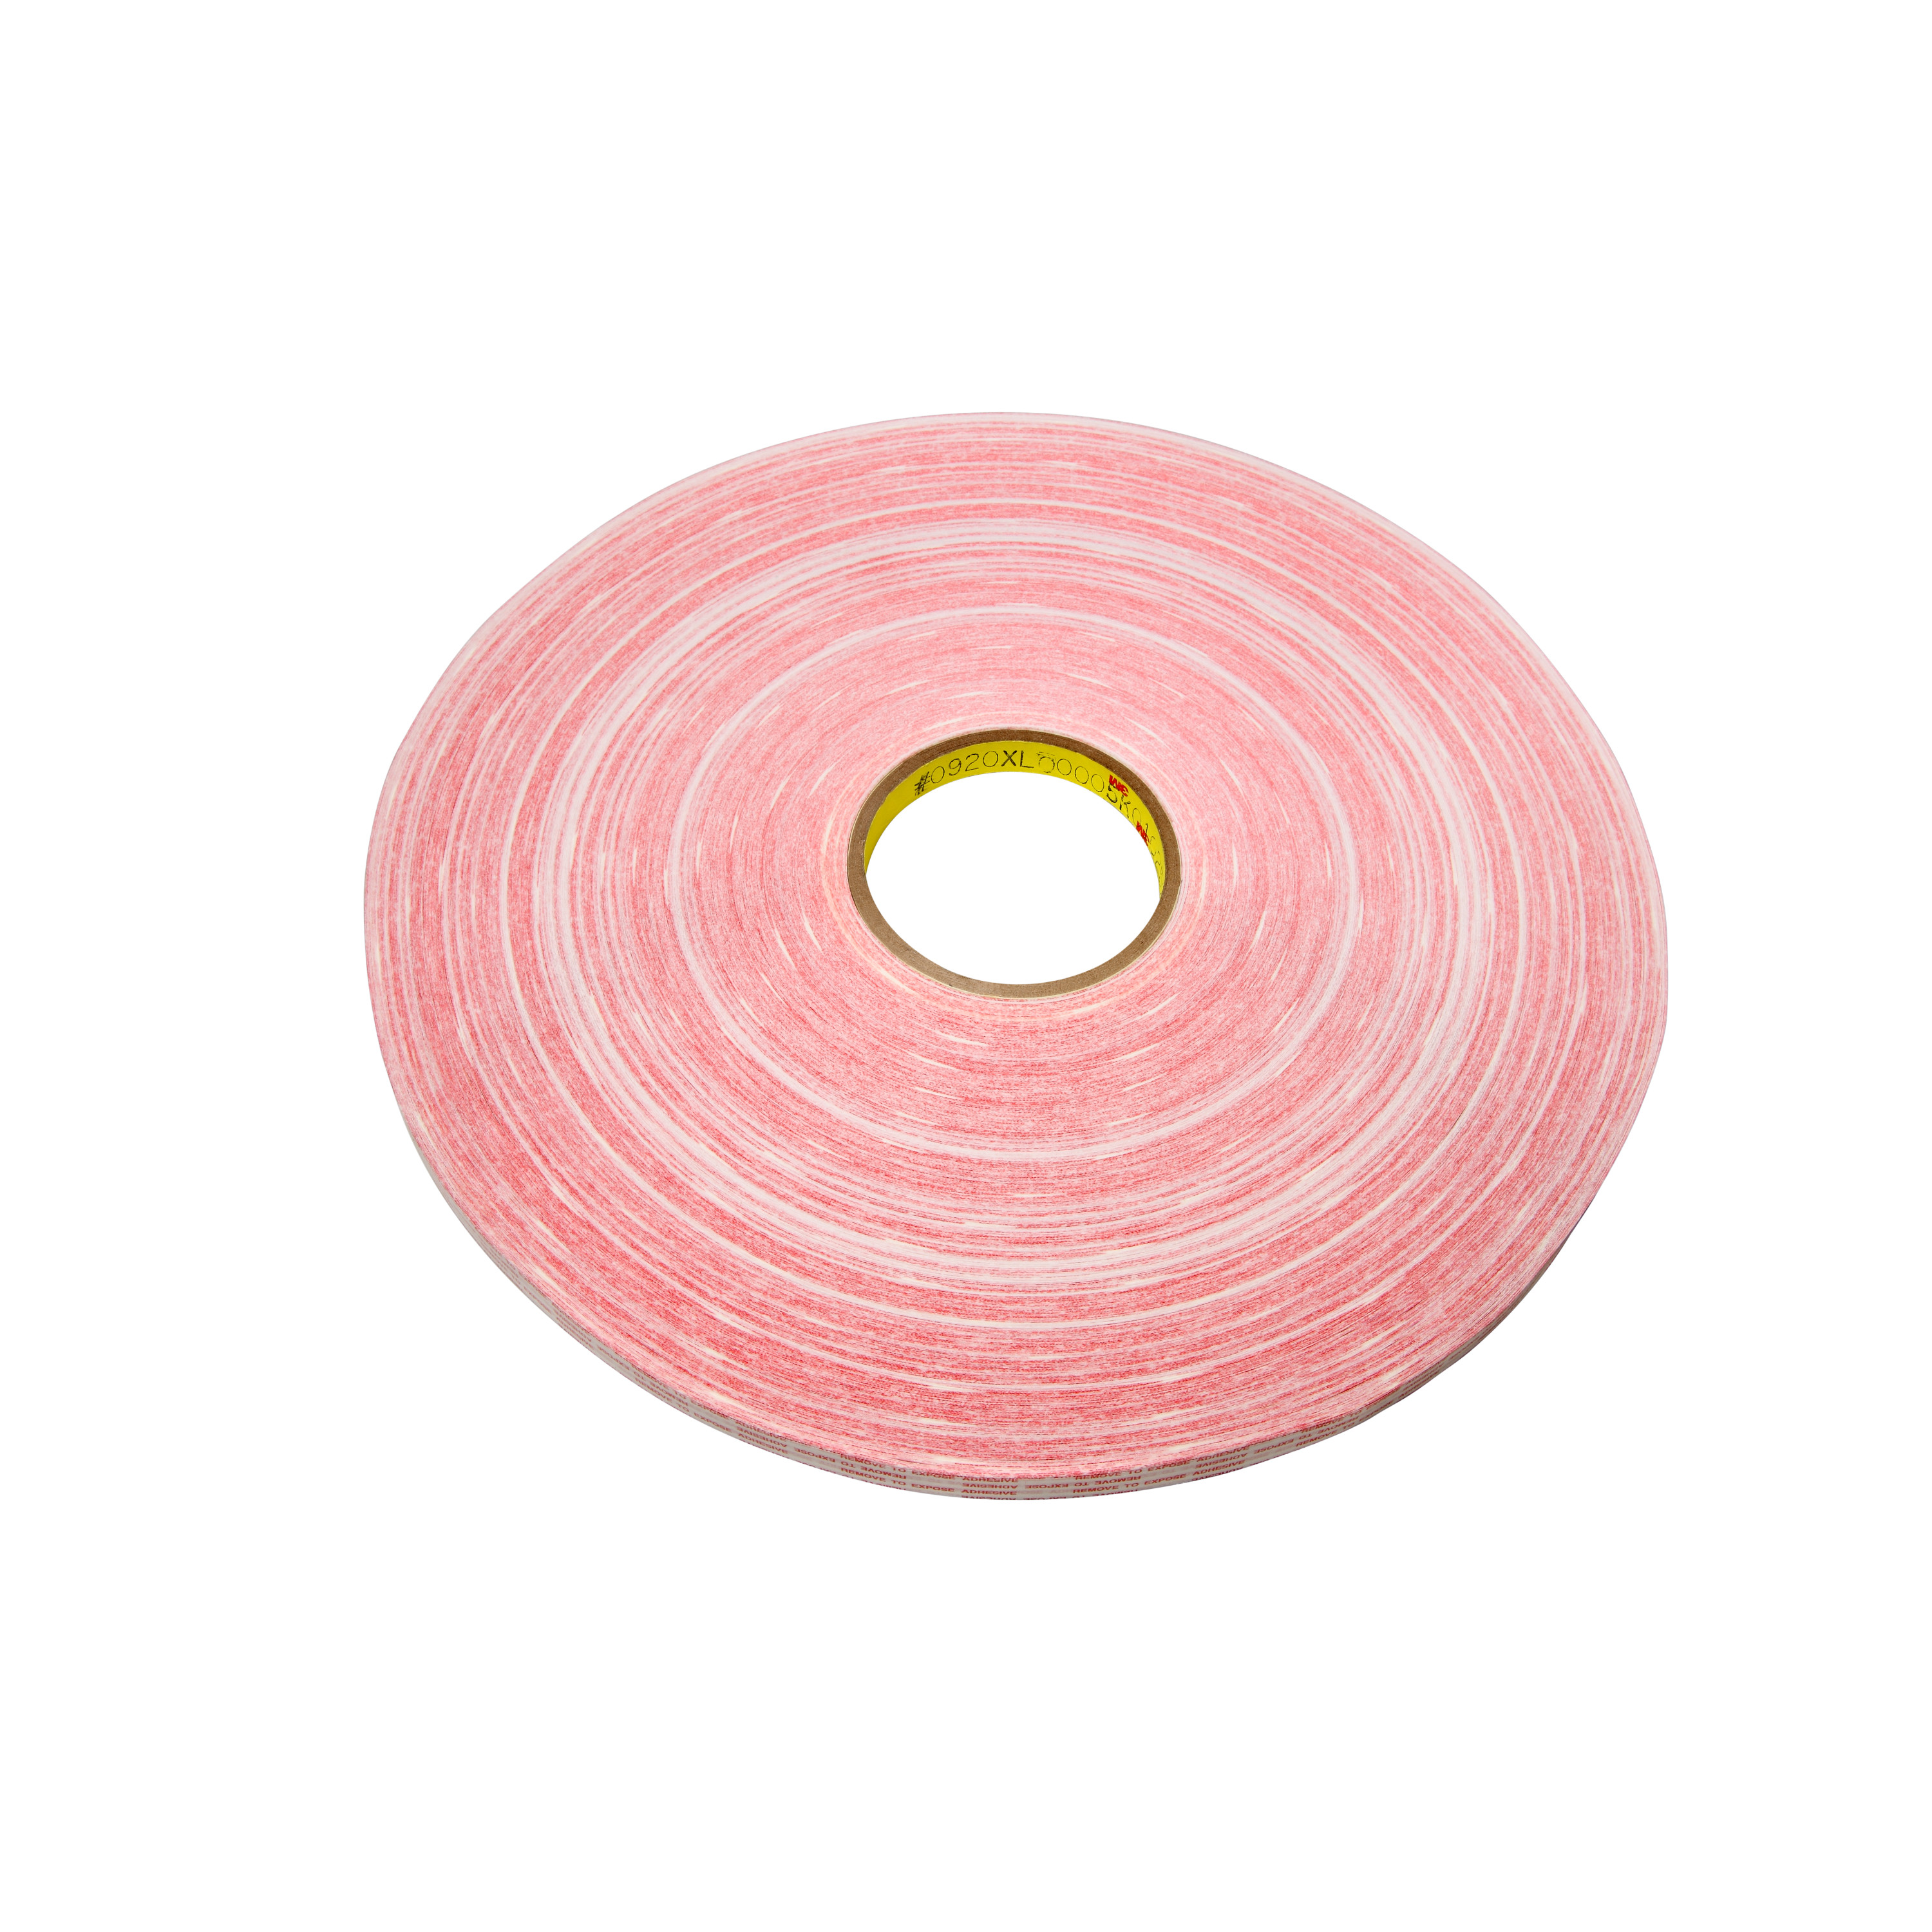 3M™ Adhesive Transfer Tape Extended Liner 920XL, Translucent, 1/2 in x 1000 yd, 1 mil, 12 rolls per case